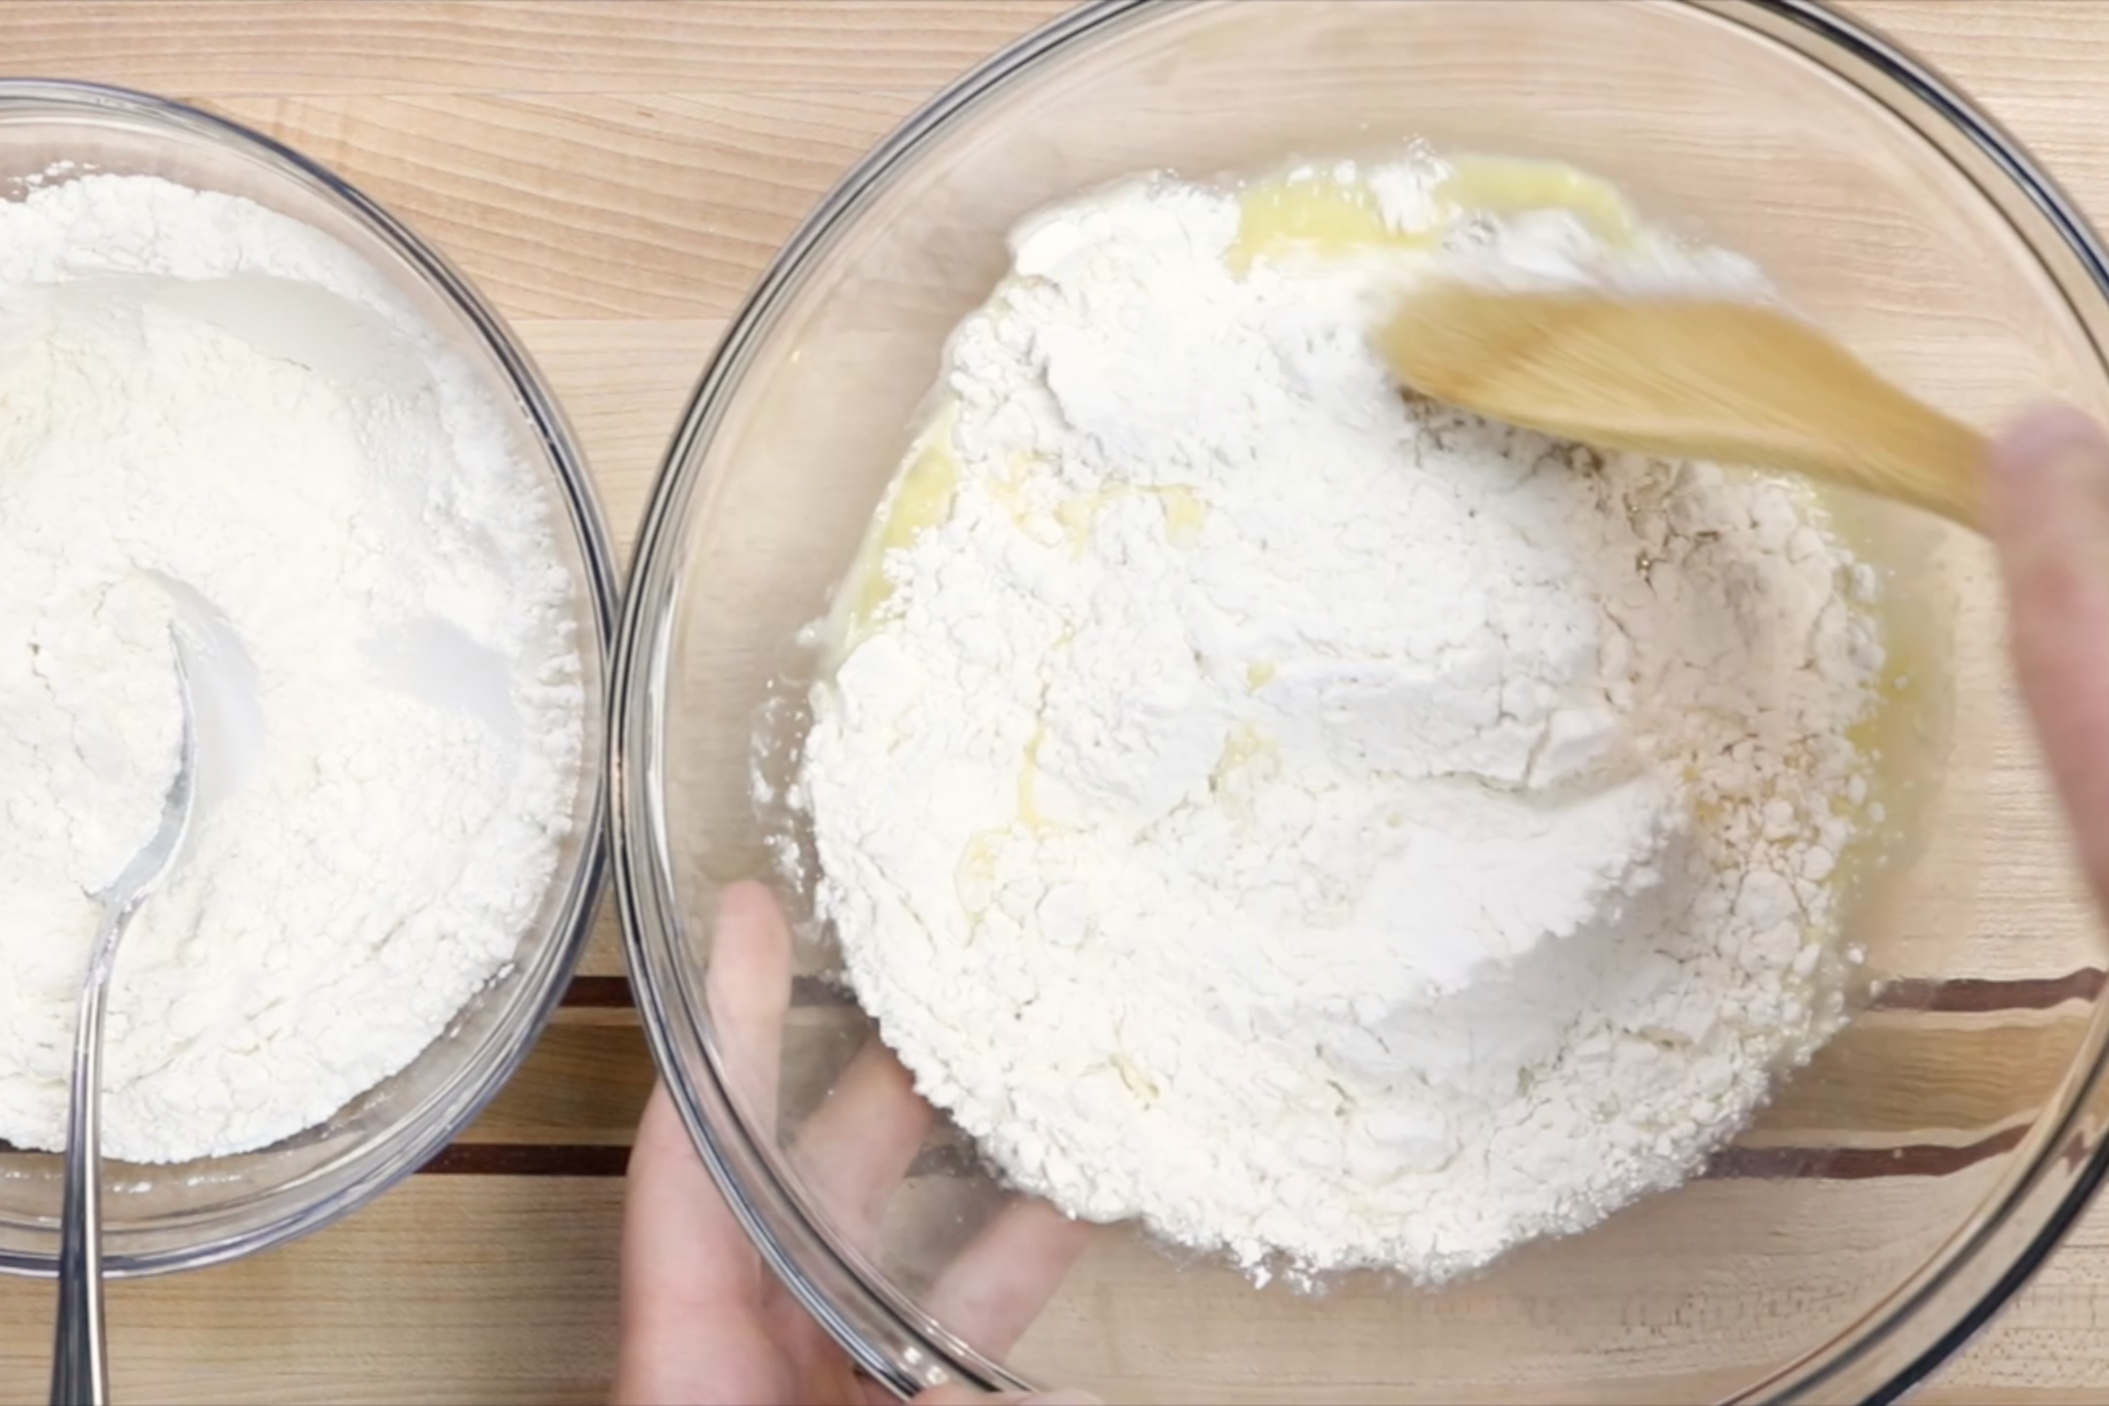 6. Slowly add the flour and mix with a large spoon or the paddle attachment for your mixer. -